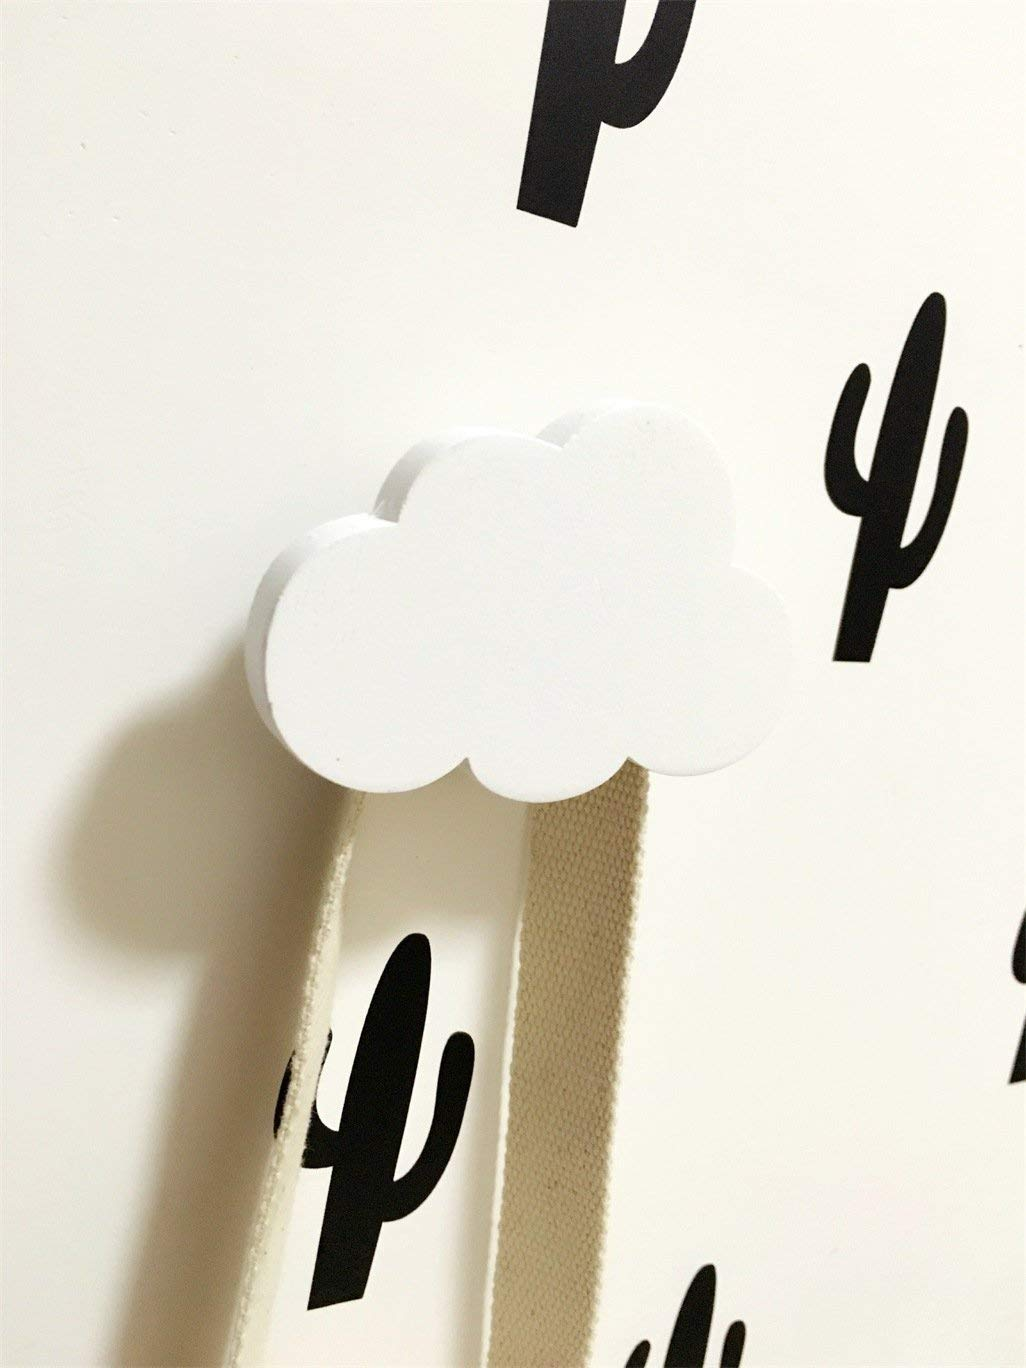 Yingealy Decorate Your Home Clouds Hook Wooden Children's wear Shop Decoration Room Wall Adhesive Hook Nordic Style, Black Clouds Hook (Color : The White Clouds Hook)